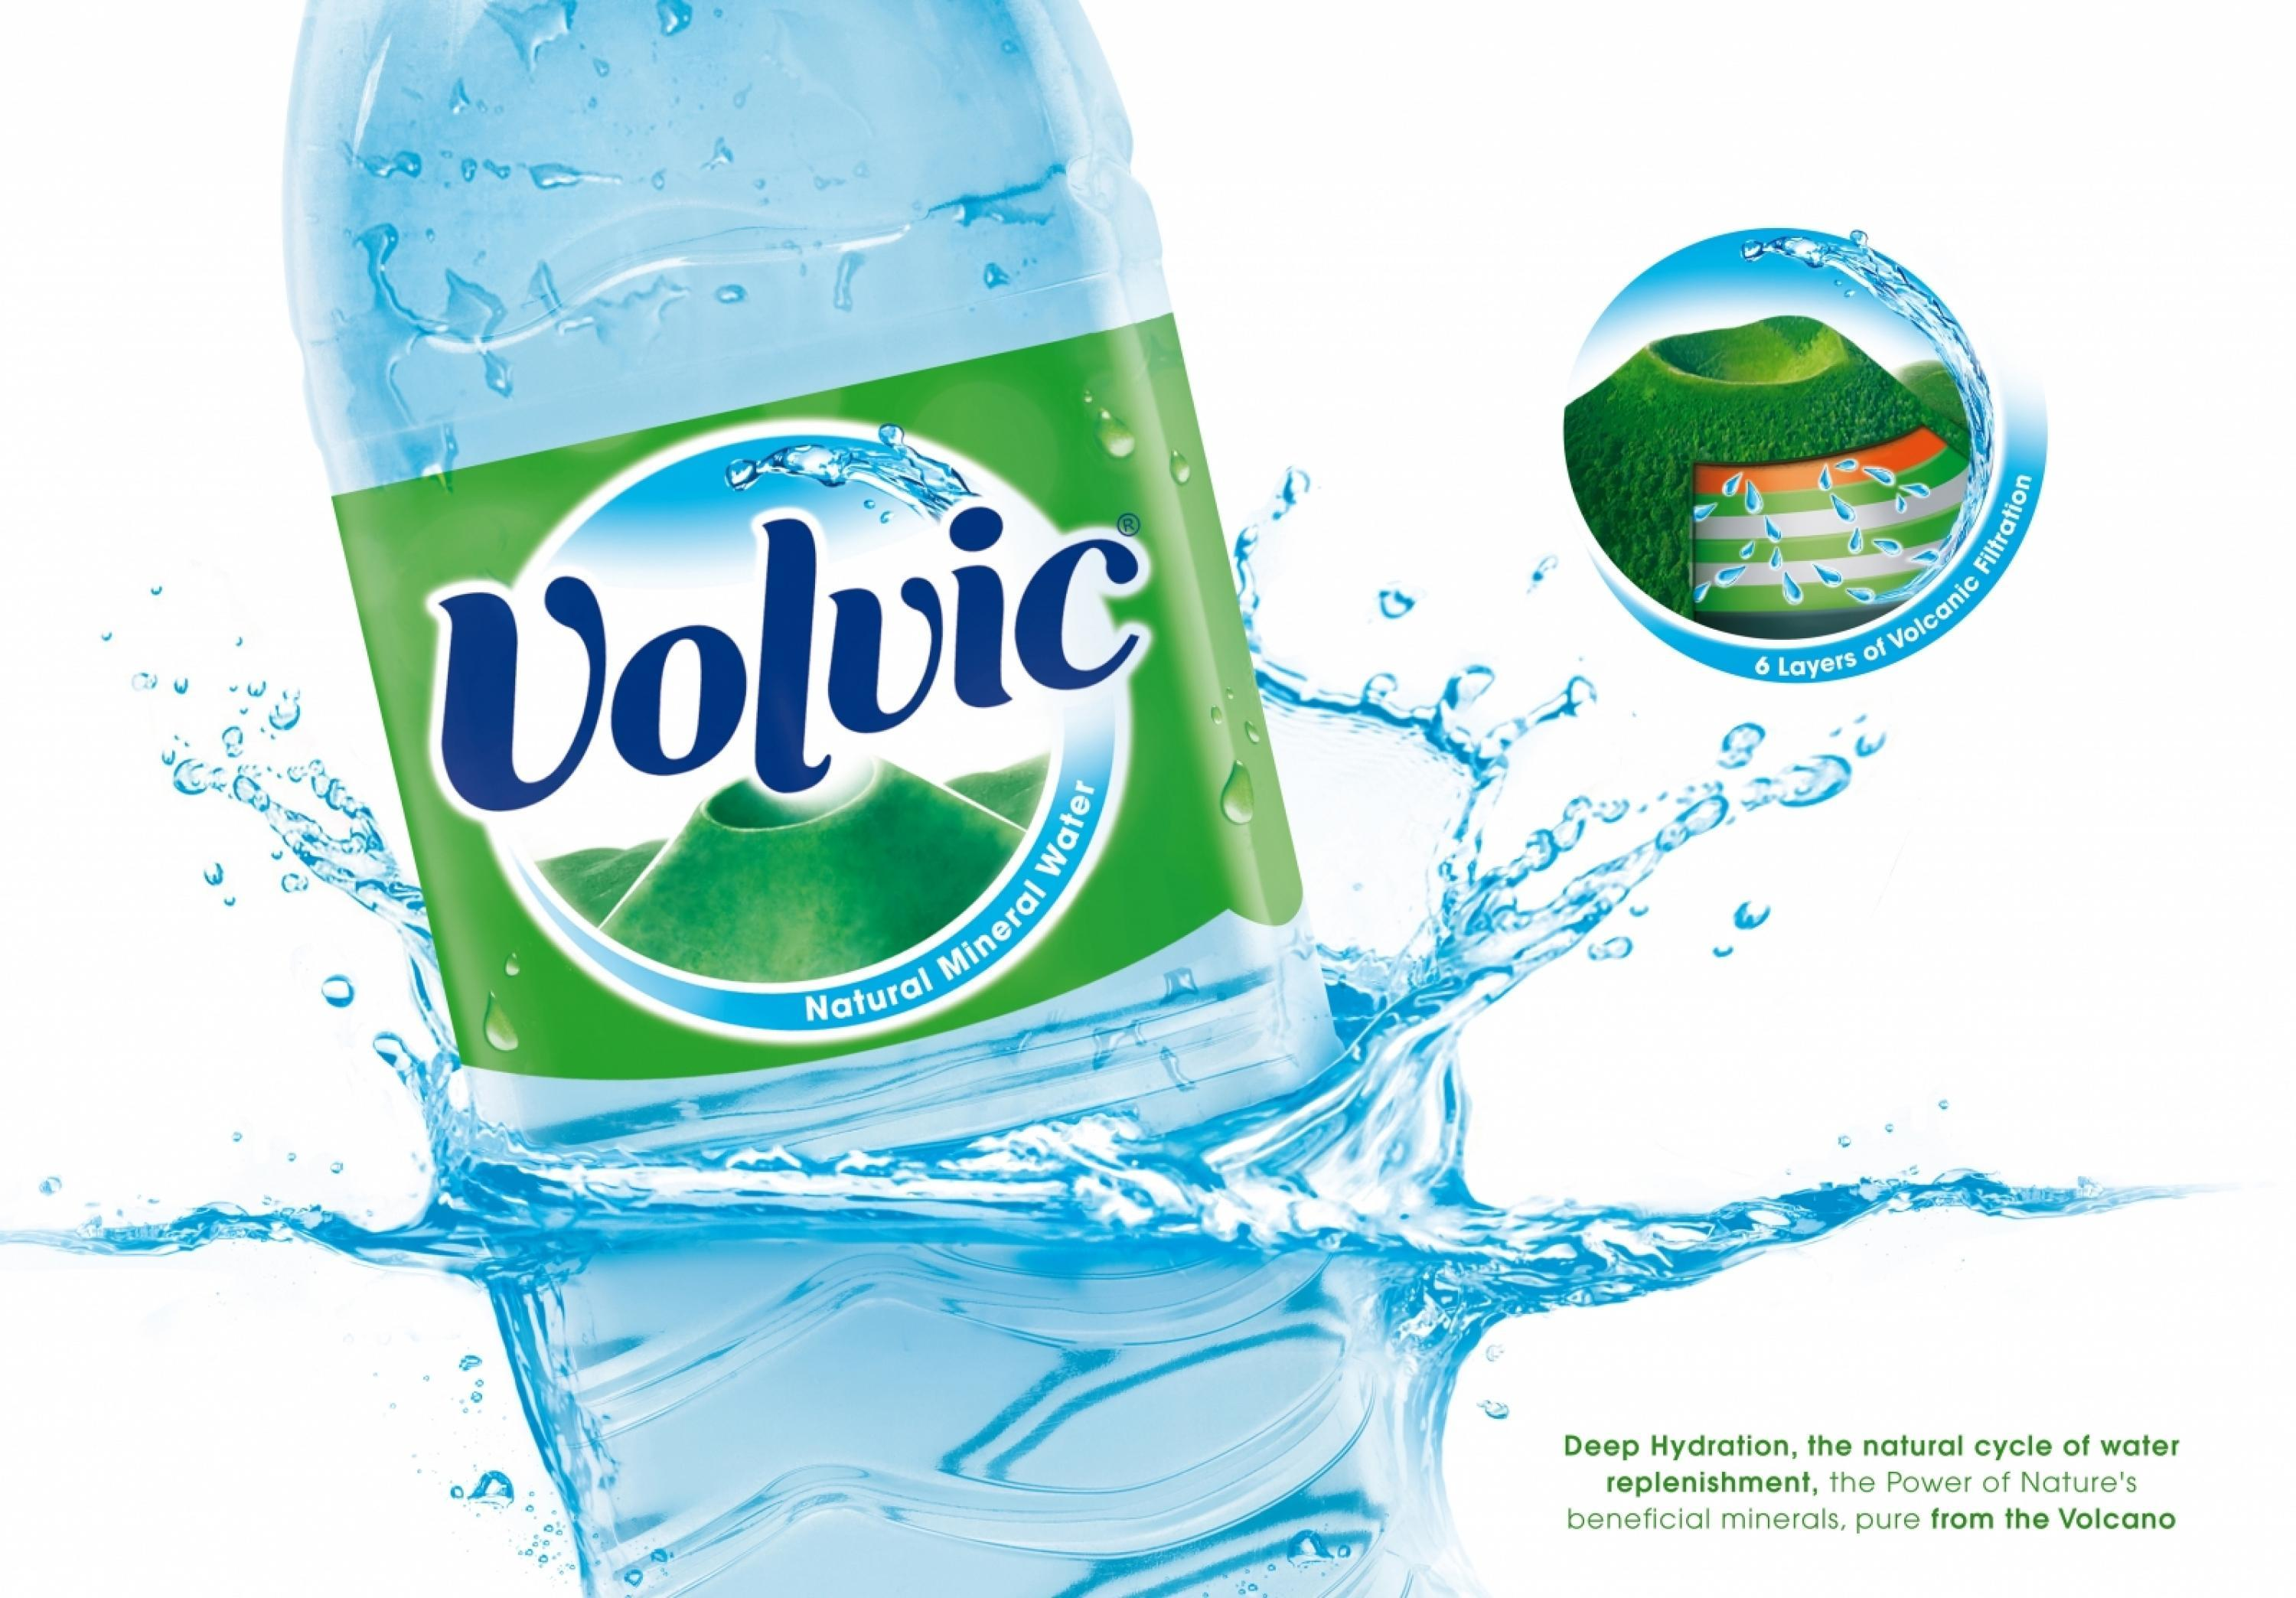 Adeevee | Only selected creativity - Danone Group Mineral Water And  Aquadrinks: Volvic International New Worldwide Branding